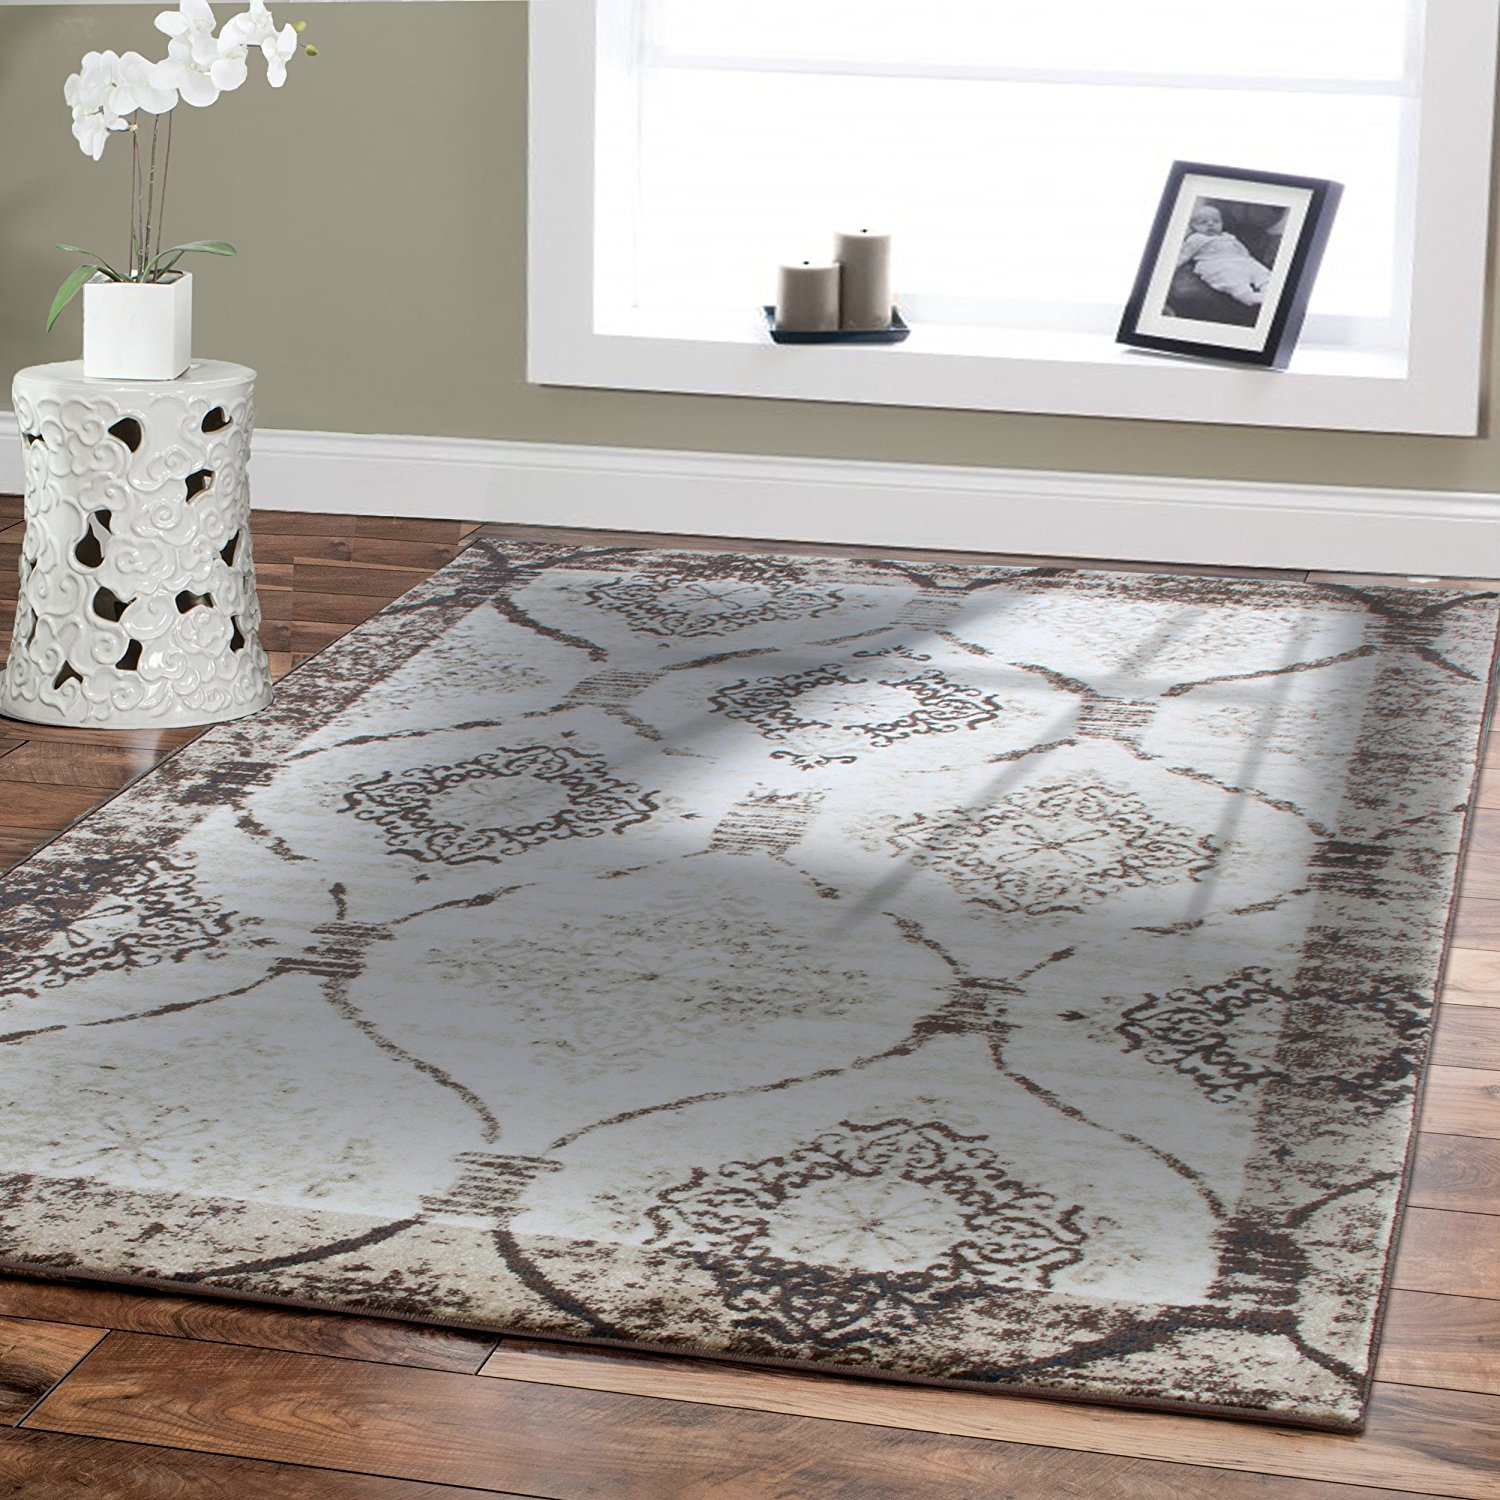 Premium High Quality Soft Brown Rugs for Living Room 5x7 Contemporary Area Rugs on Clearance 5x8 Dynamix Modern Rug